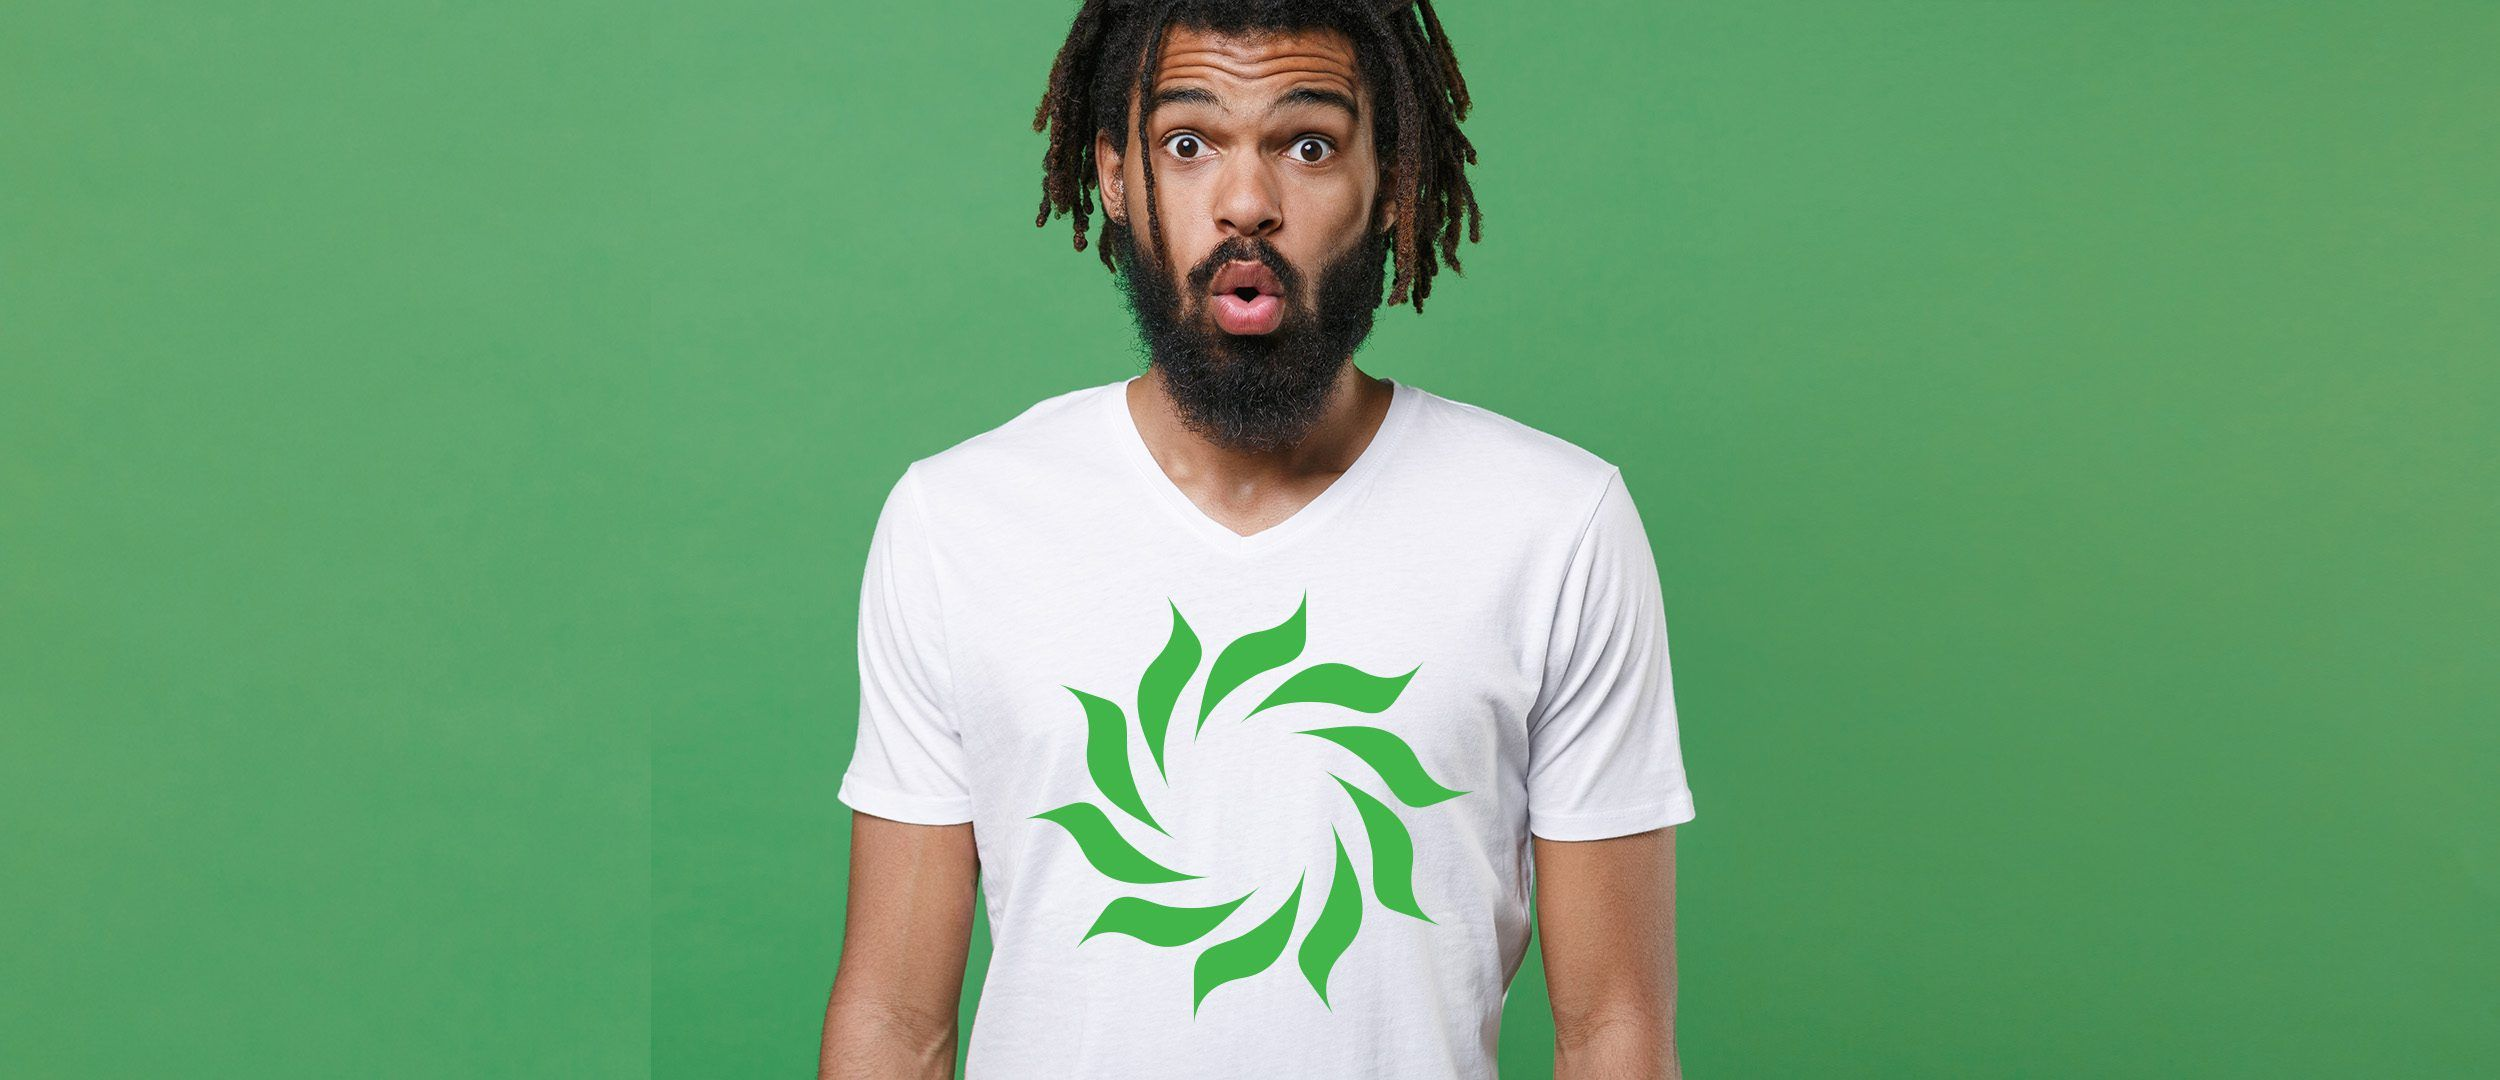 Shocked amazed young african american man guy wearing white casual t-shirt posing isolated on green wall background studio portrait. People sincere emotions lifestyle concept. Looking camera